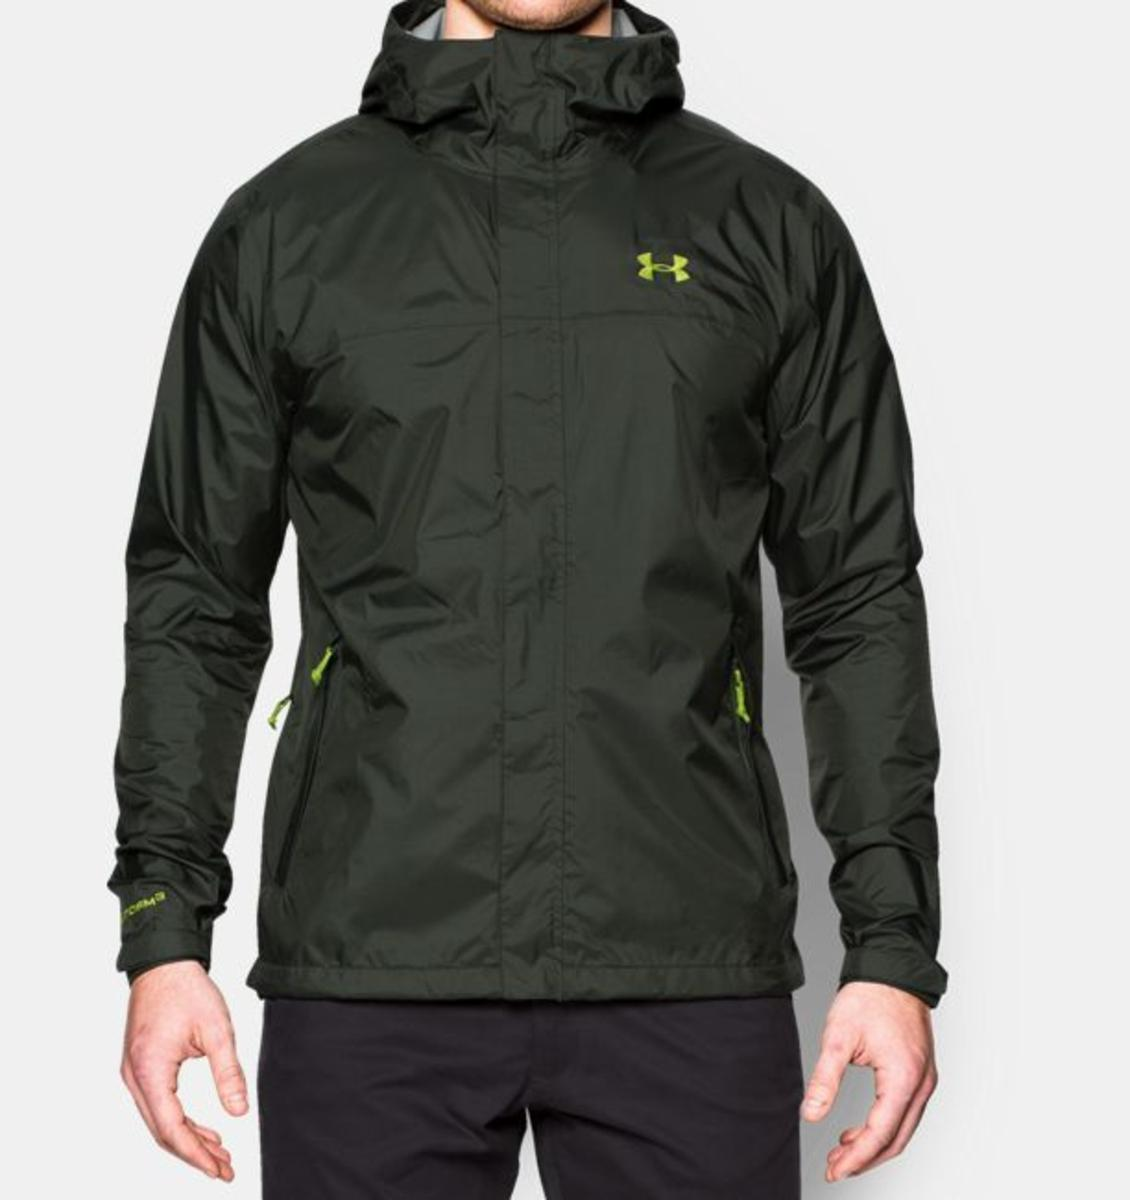 96de05490 Under Armour Men's UA Storm Surge Jacket - The Warming Store